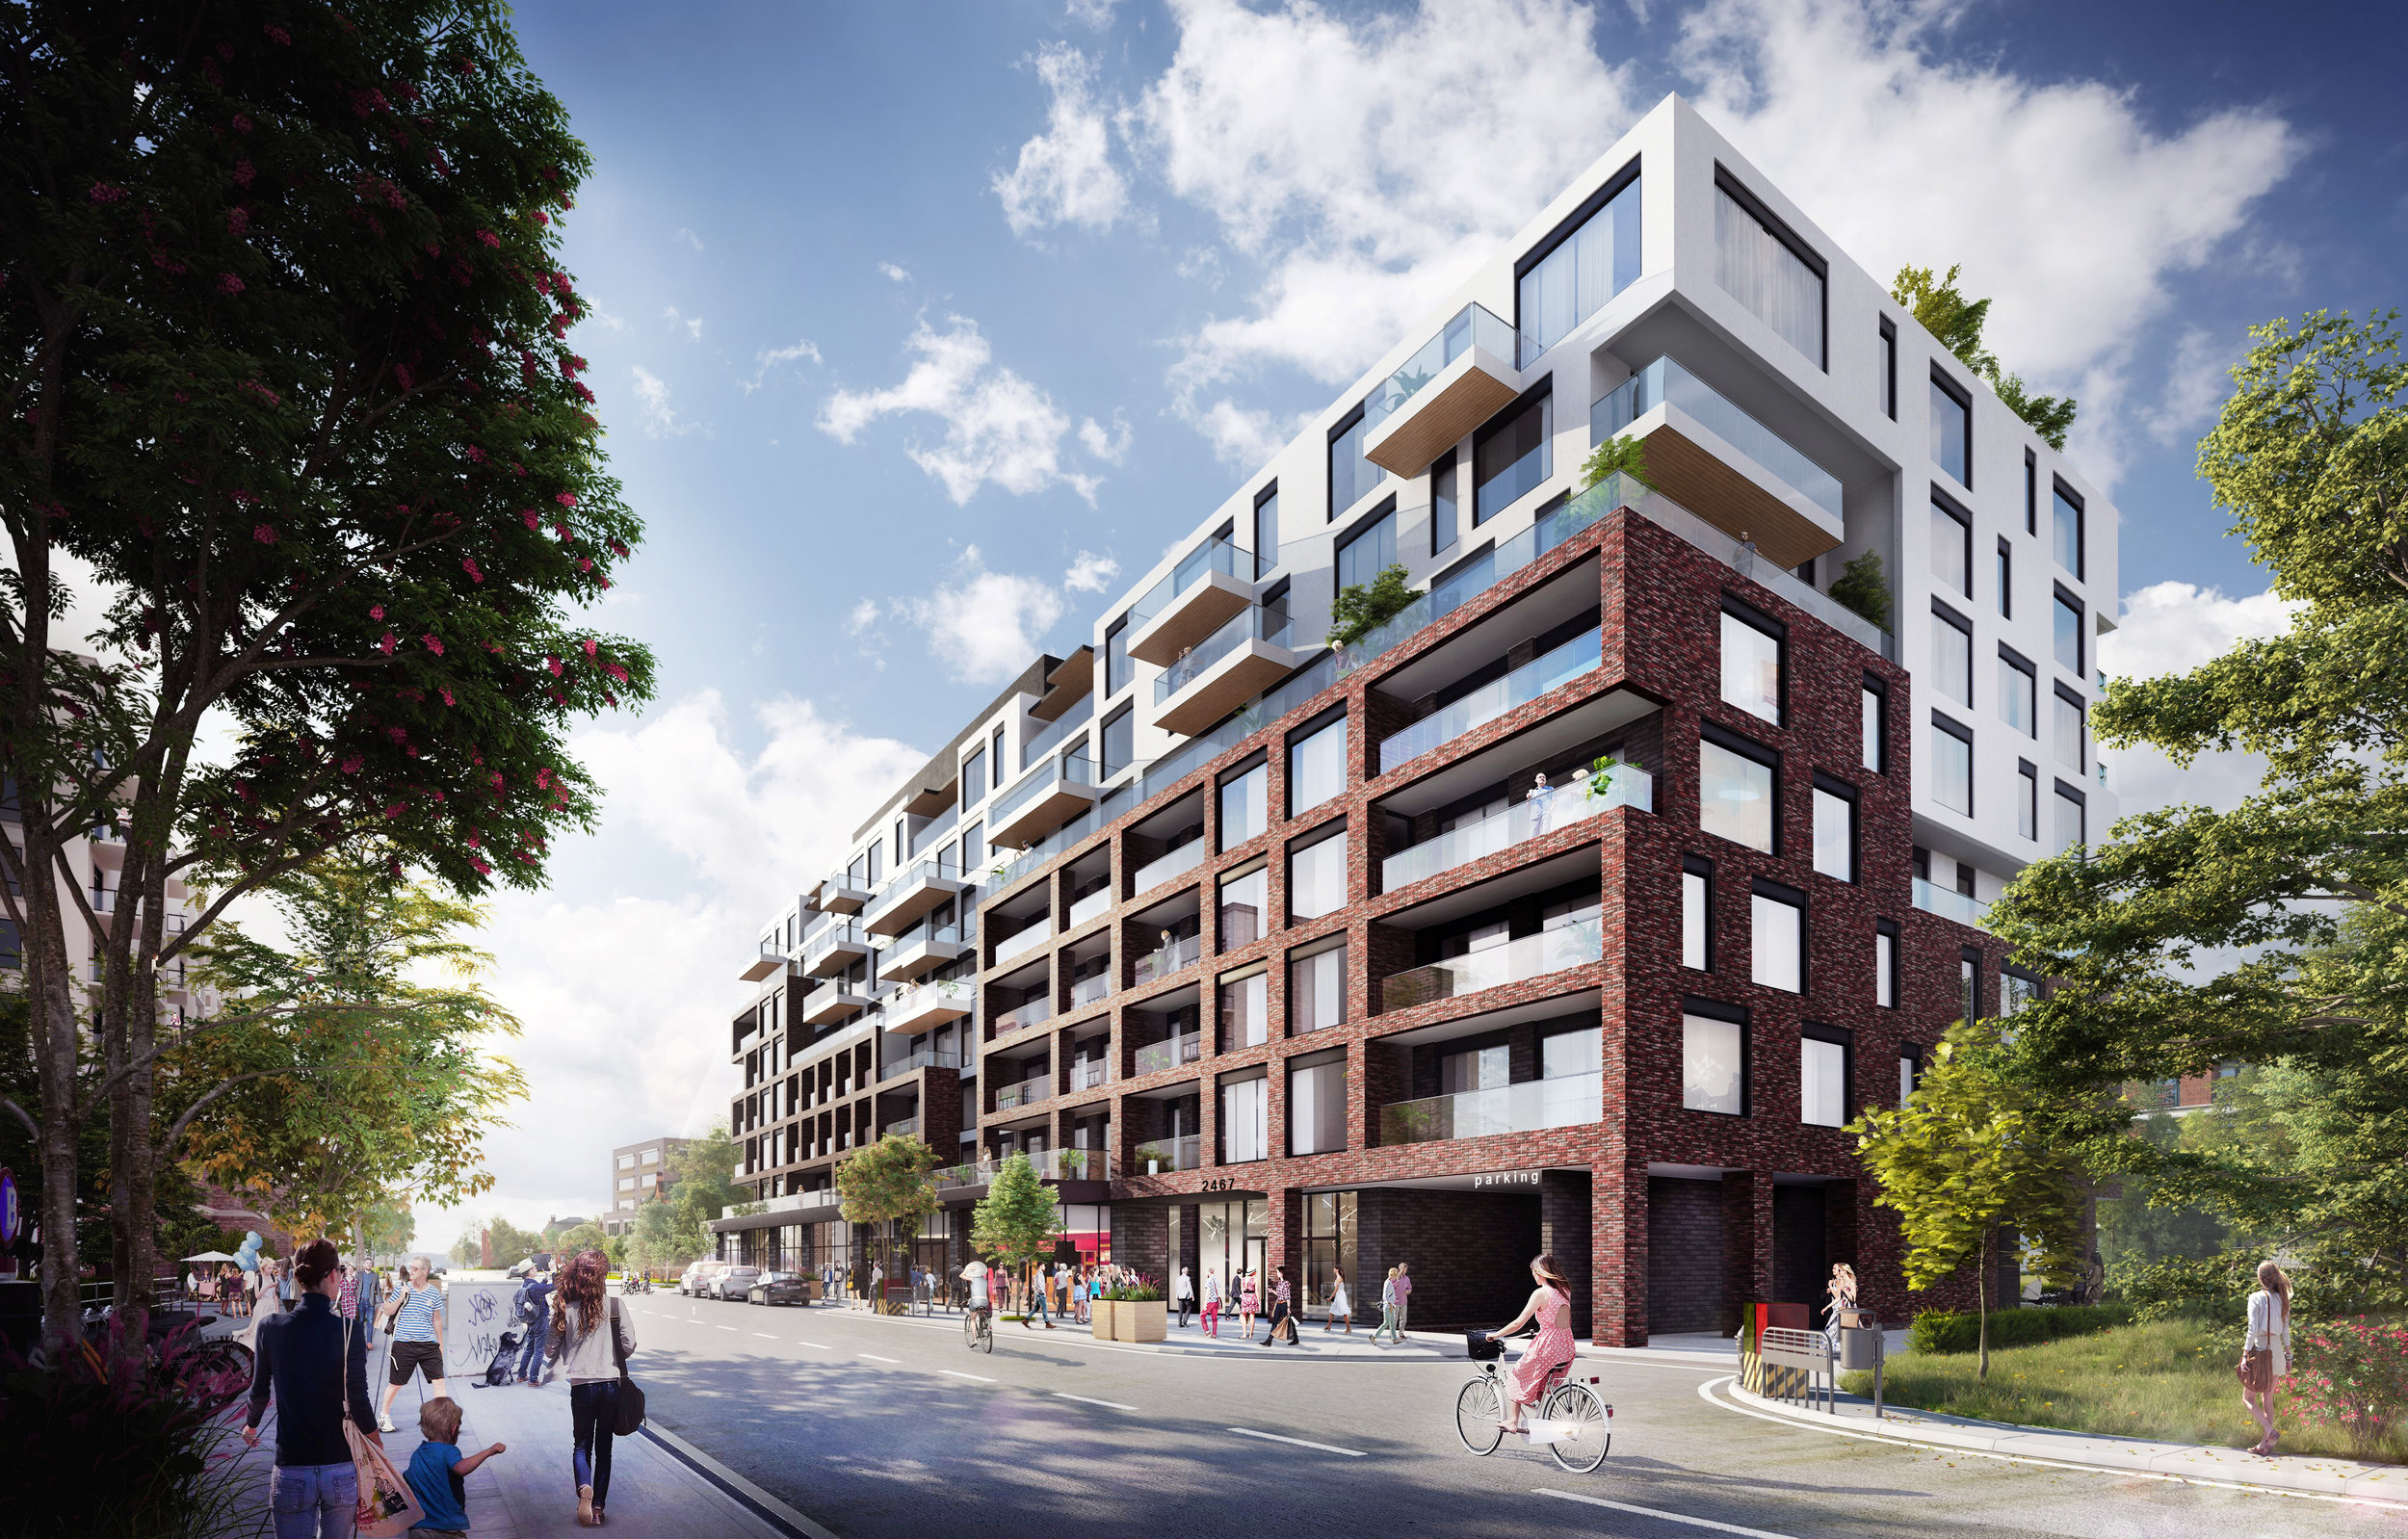 Oakville - A stunning new mid-rise condo with integrated retail coming to Oakville. It's bringing a contemporary edge to town.